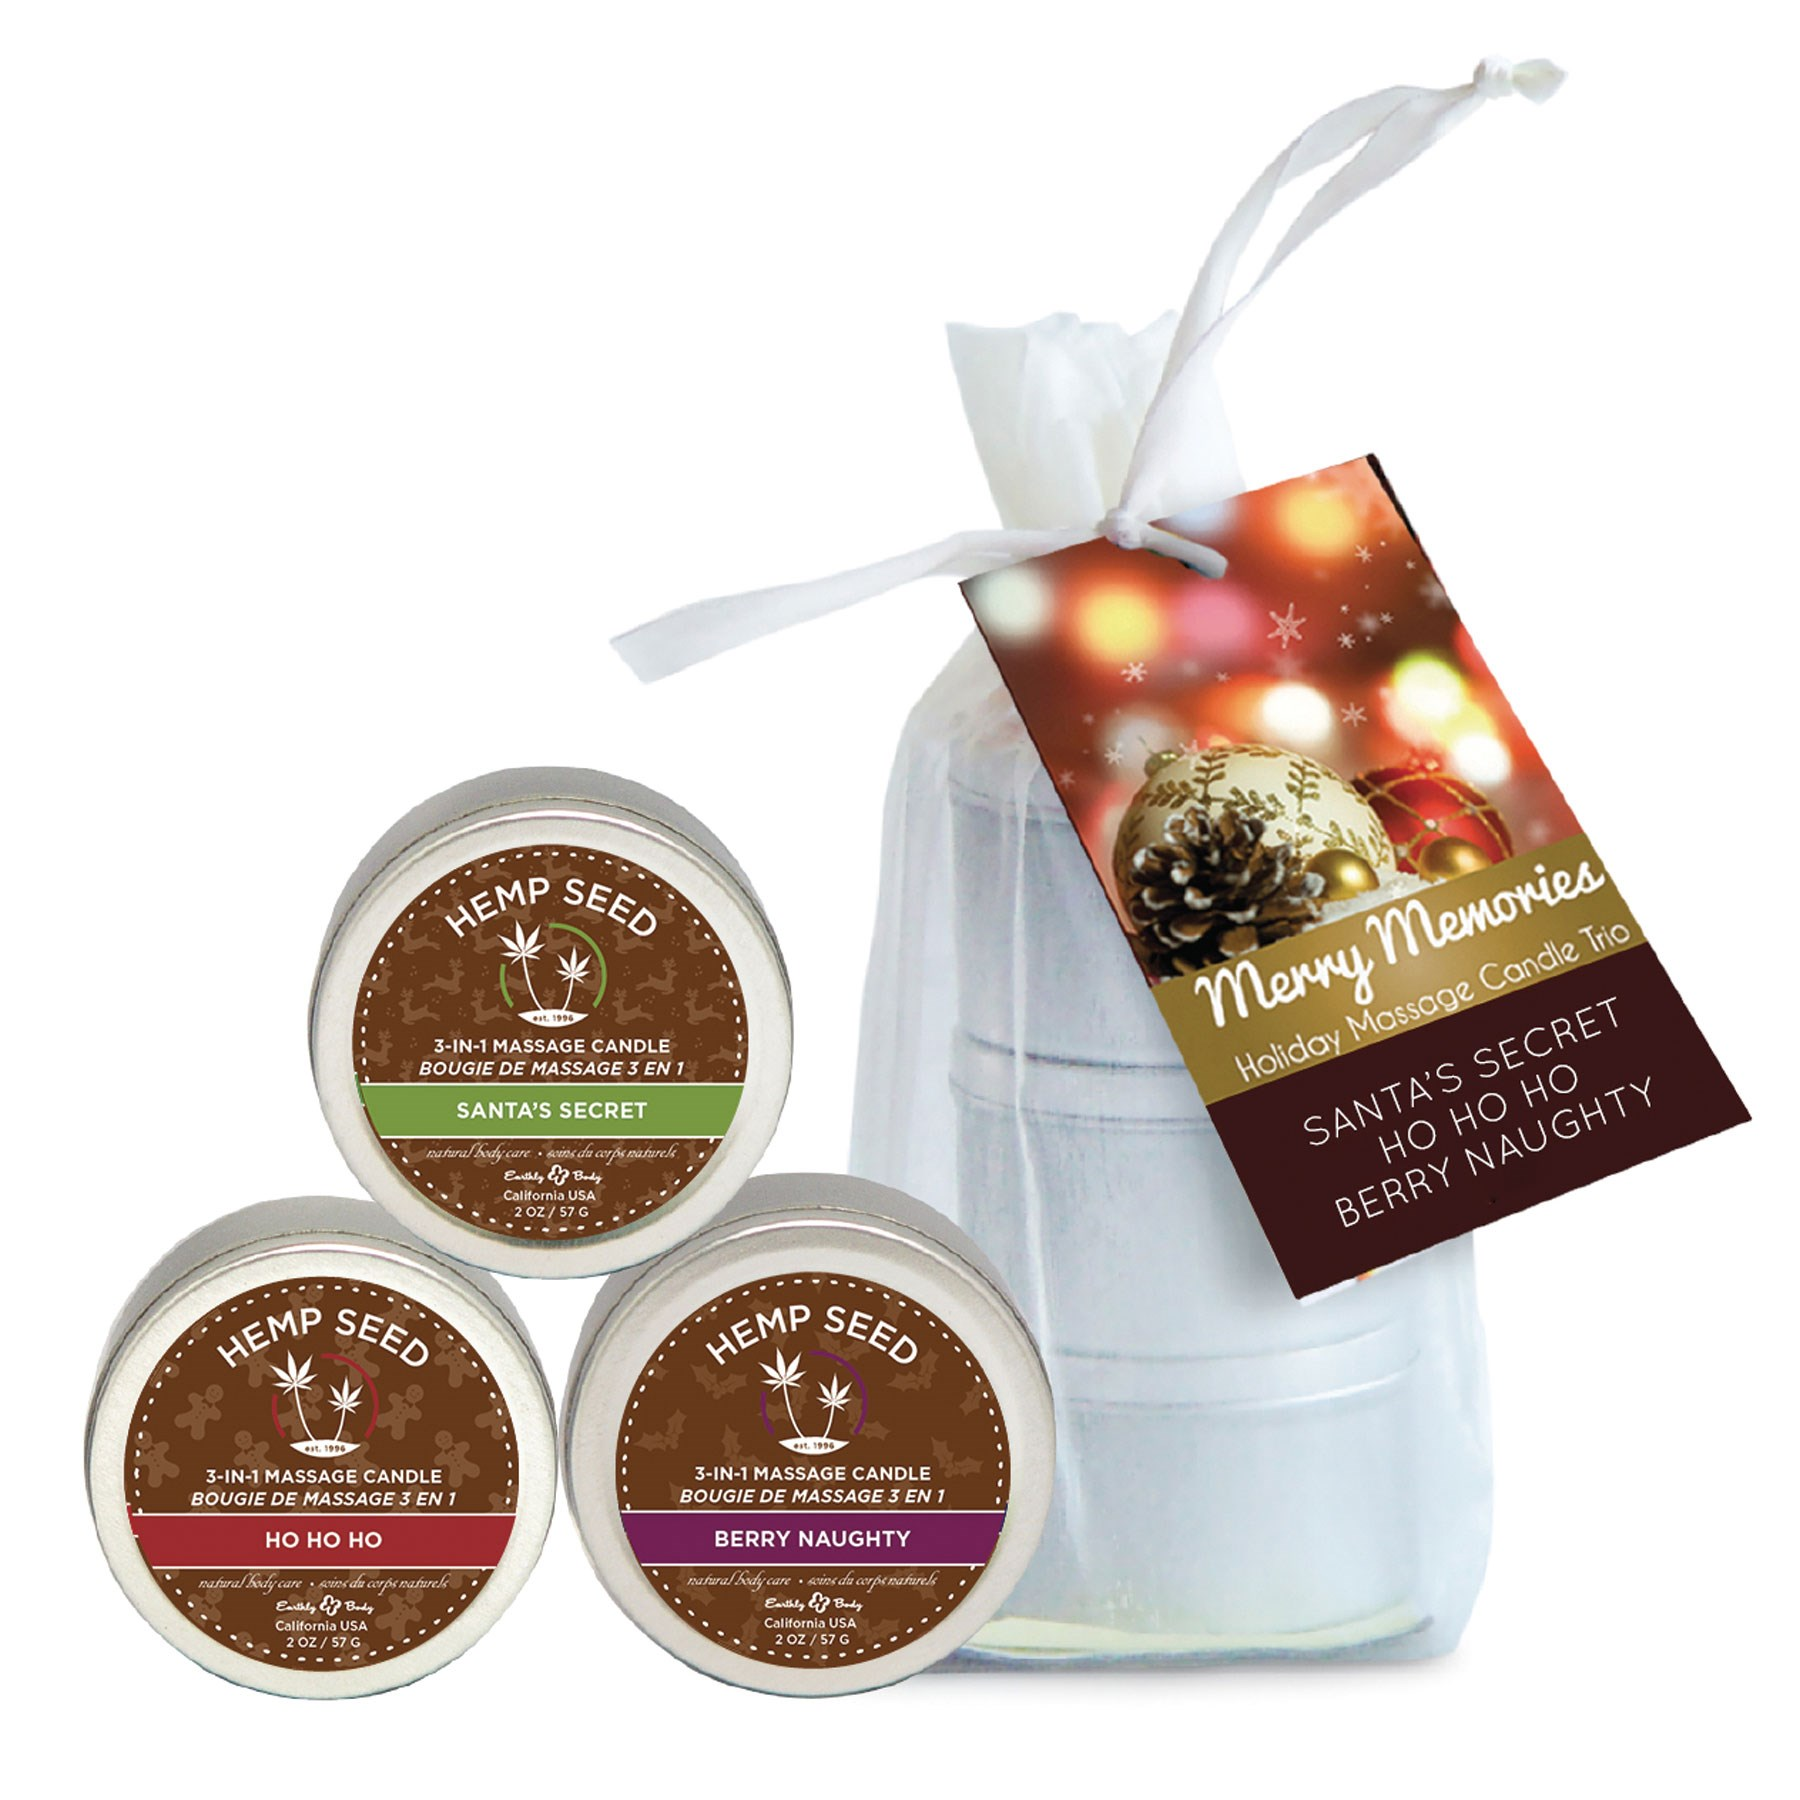 Merry Memories Holiday Massage Candle Trio